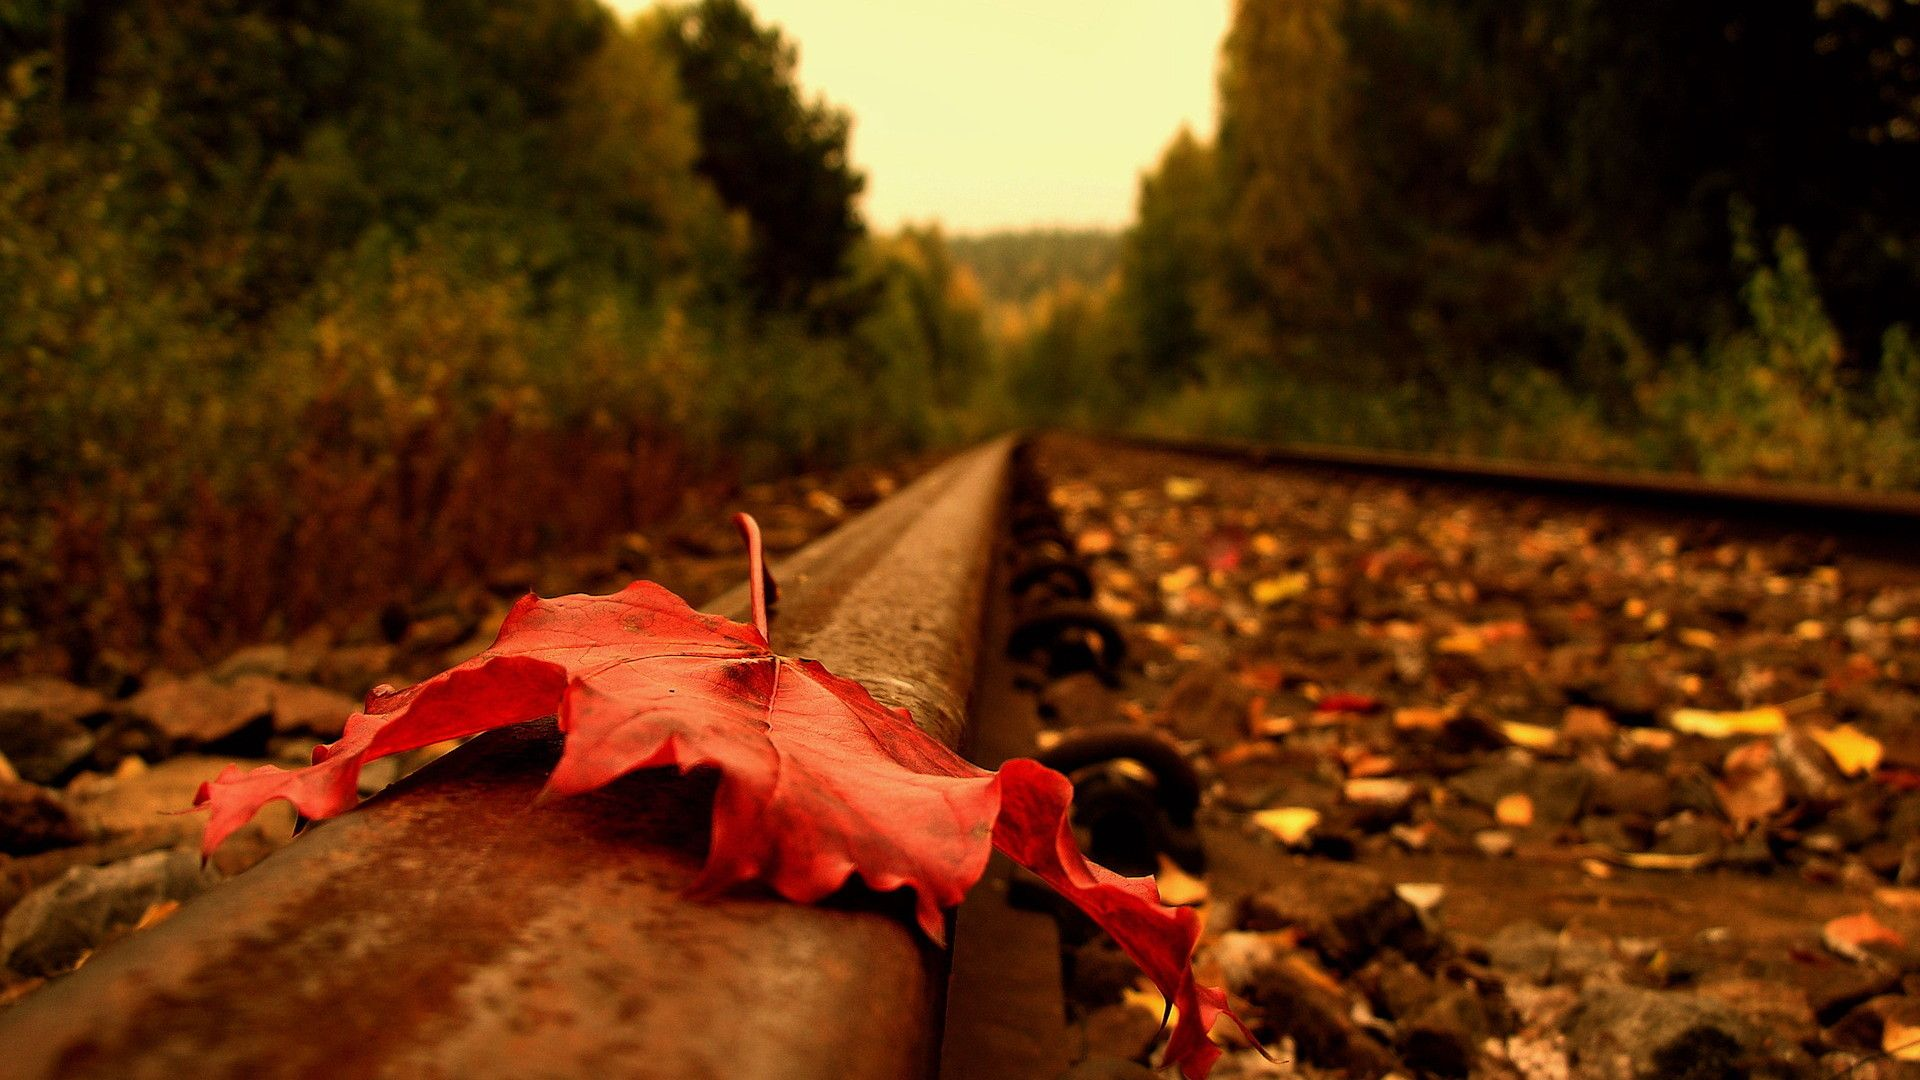 Red Autumn Leaf On The Railroad Beautiful Macro Wallpapers Hd Wallpaper Download For Ipa In 2020 Autumn Leaves Wallpaper Autumn Leaves Photography Leaf Photography